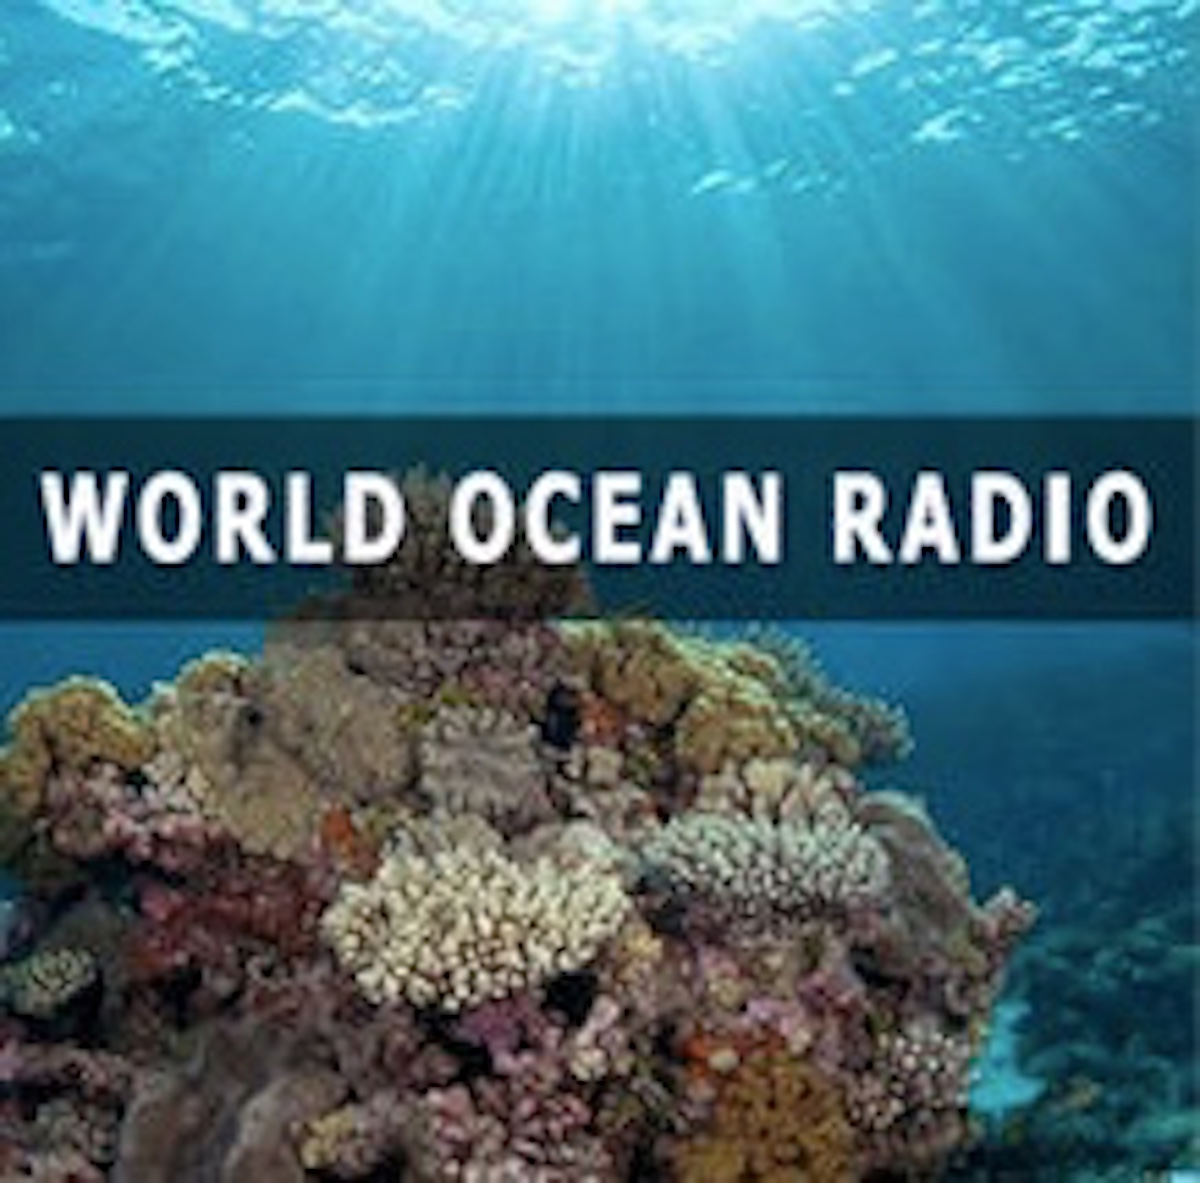 worldoceanradio.jpg